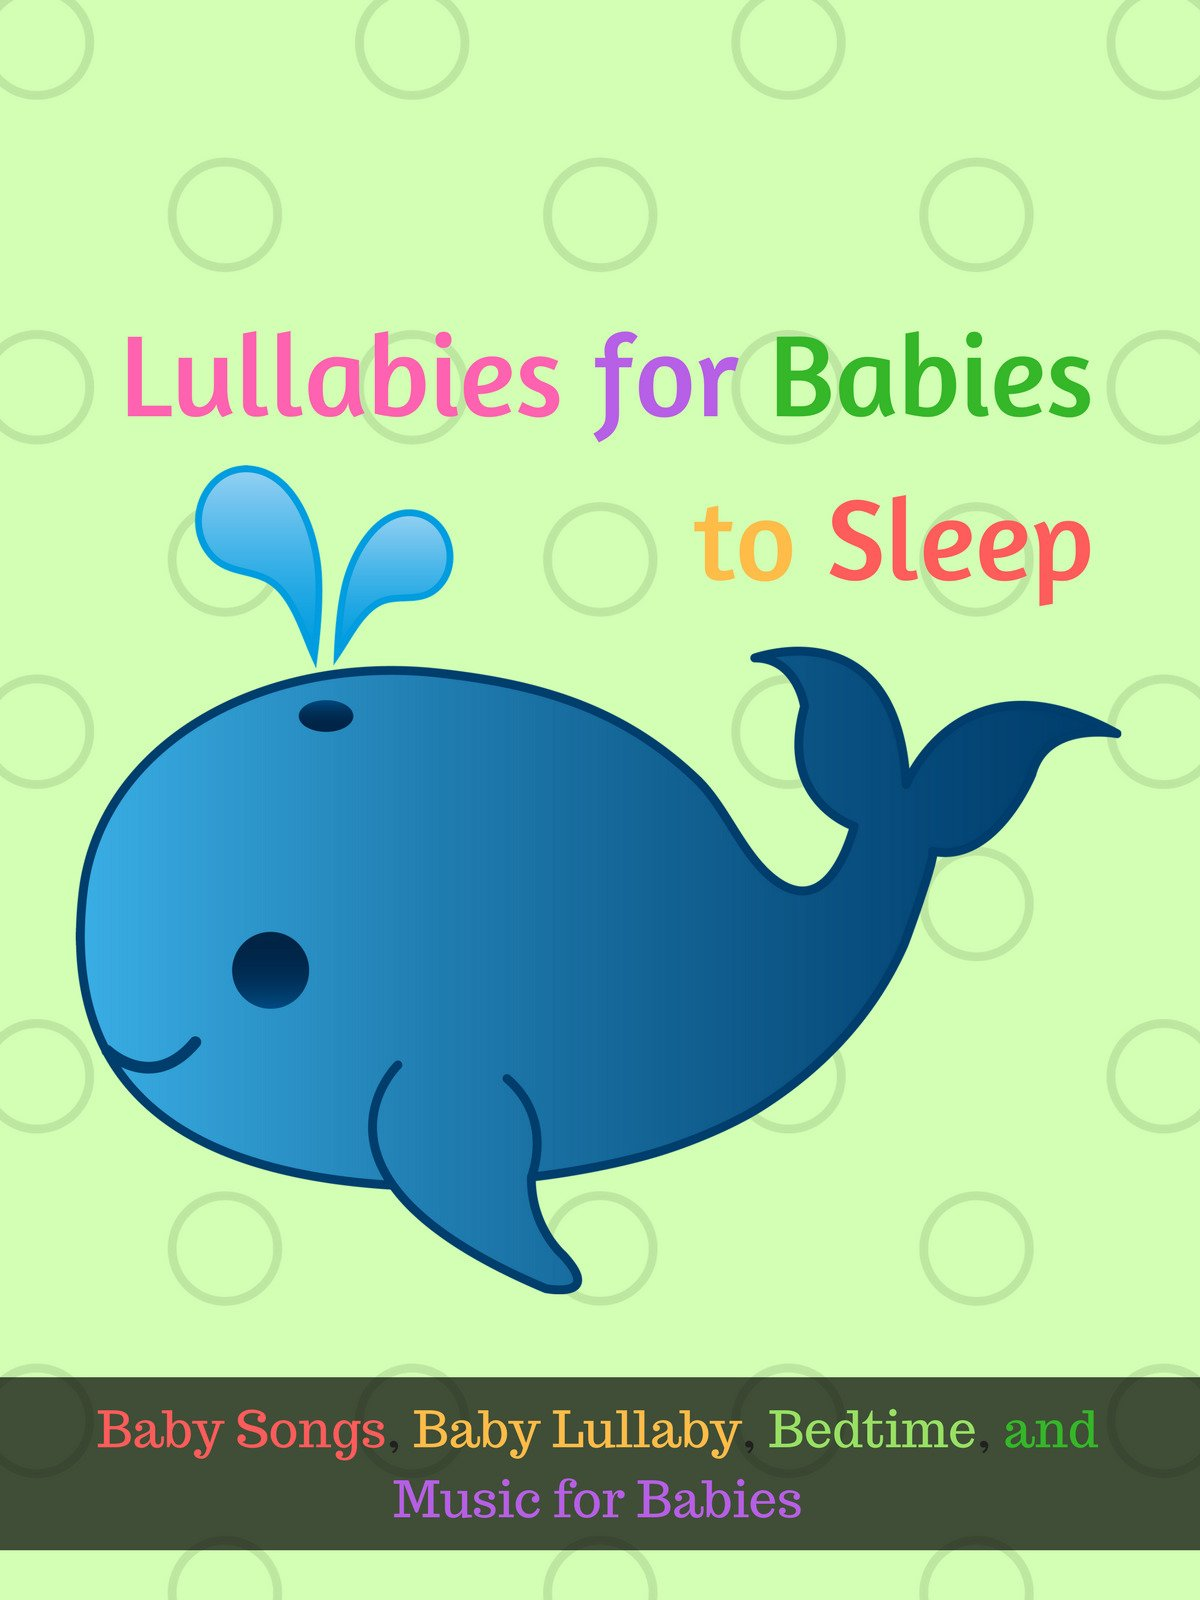 Amazon.com: Watch Lullabies for Babies to Sleep - Baby Songs, Baby Lullaby,  Bedtime, Music for Babies | Prime Video